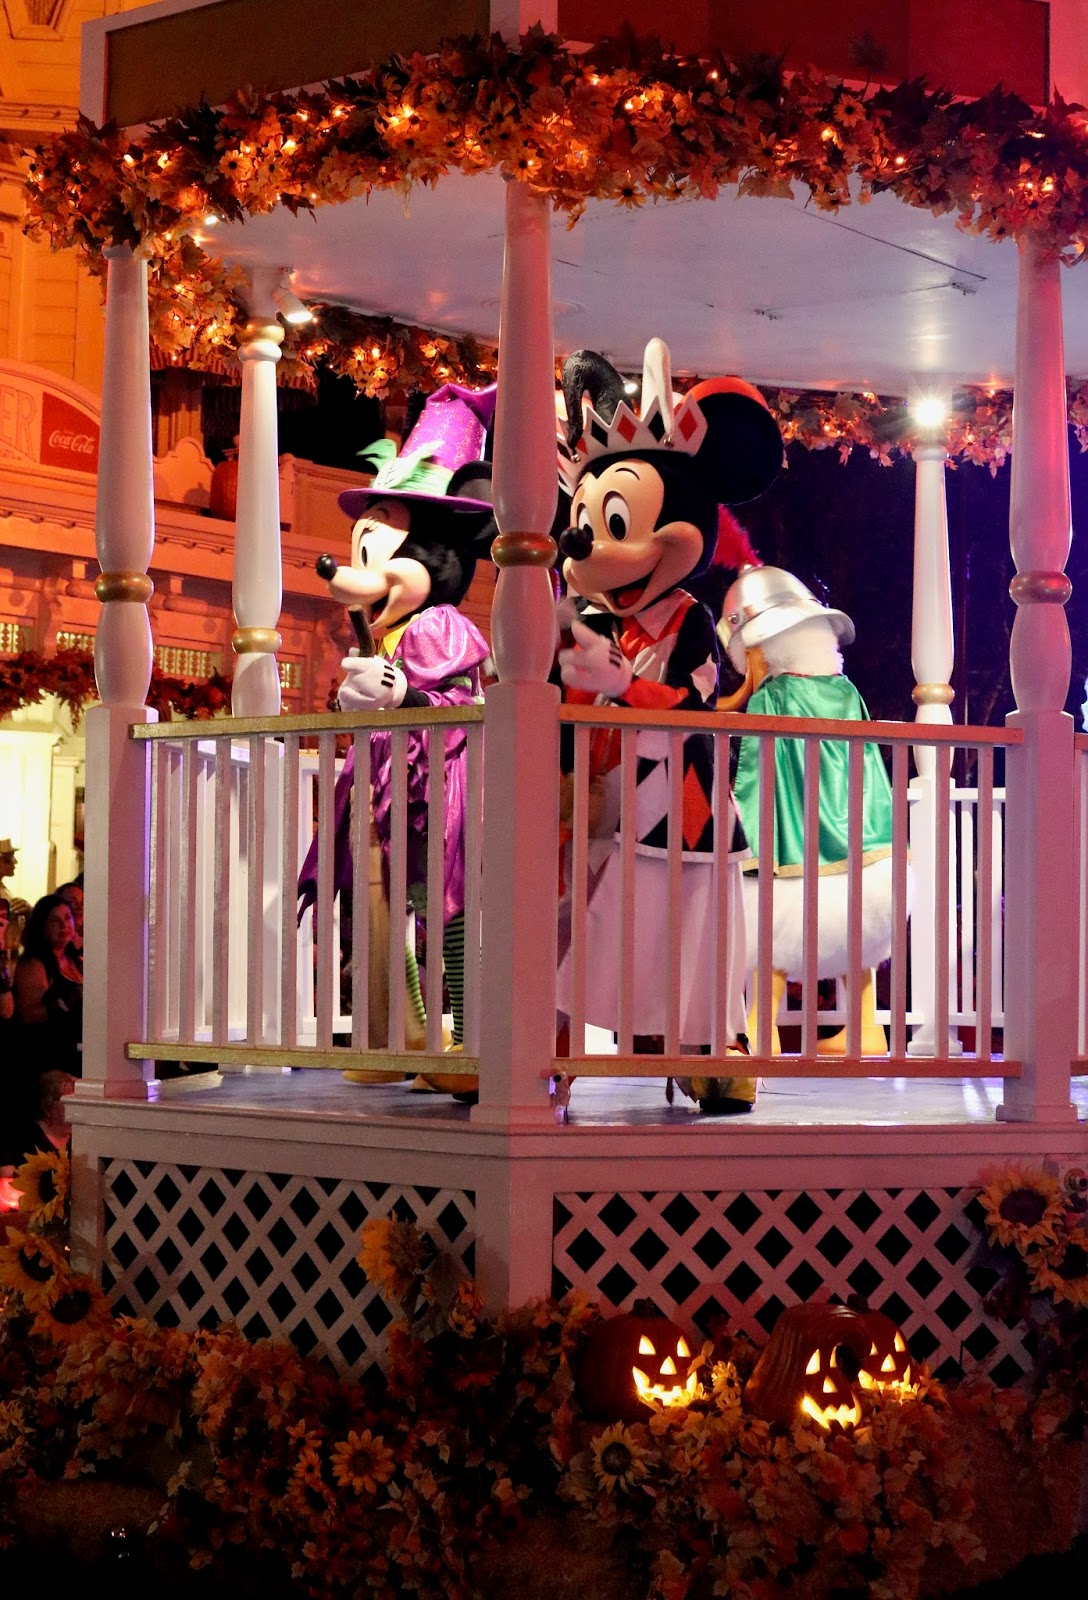 Micky's-Not-So-Scary-Halloween-Party-Boo-To-You-Parade-Micky-Magic-Kingdom-Disney-World